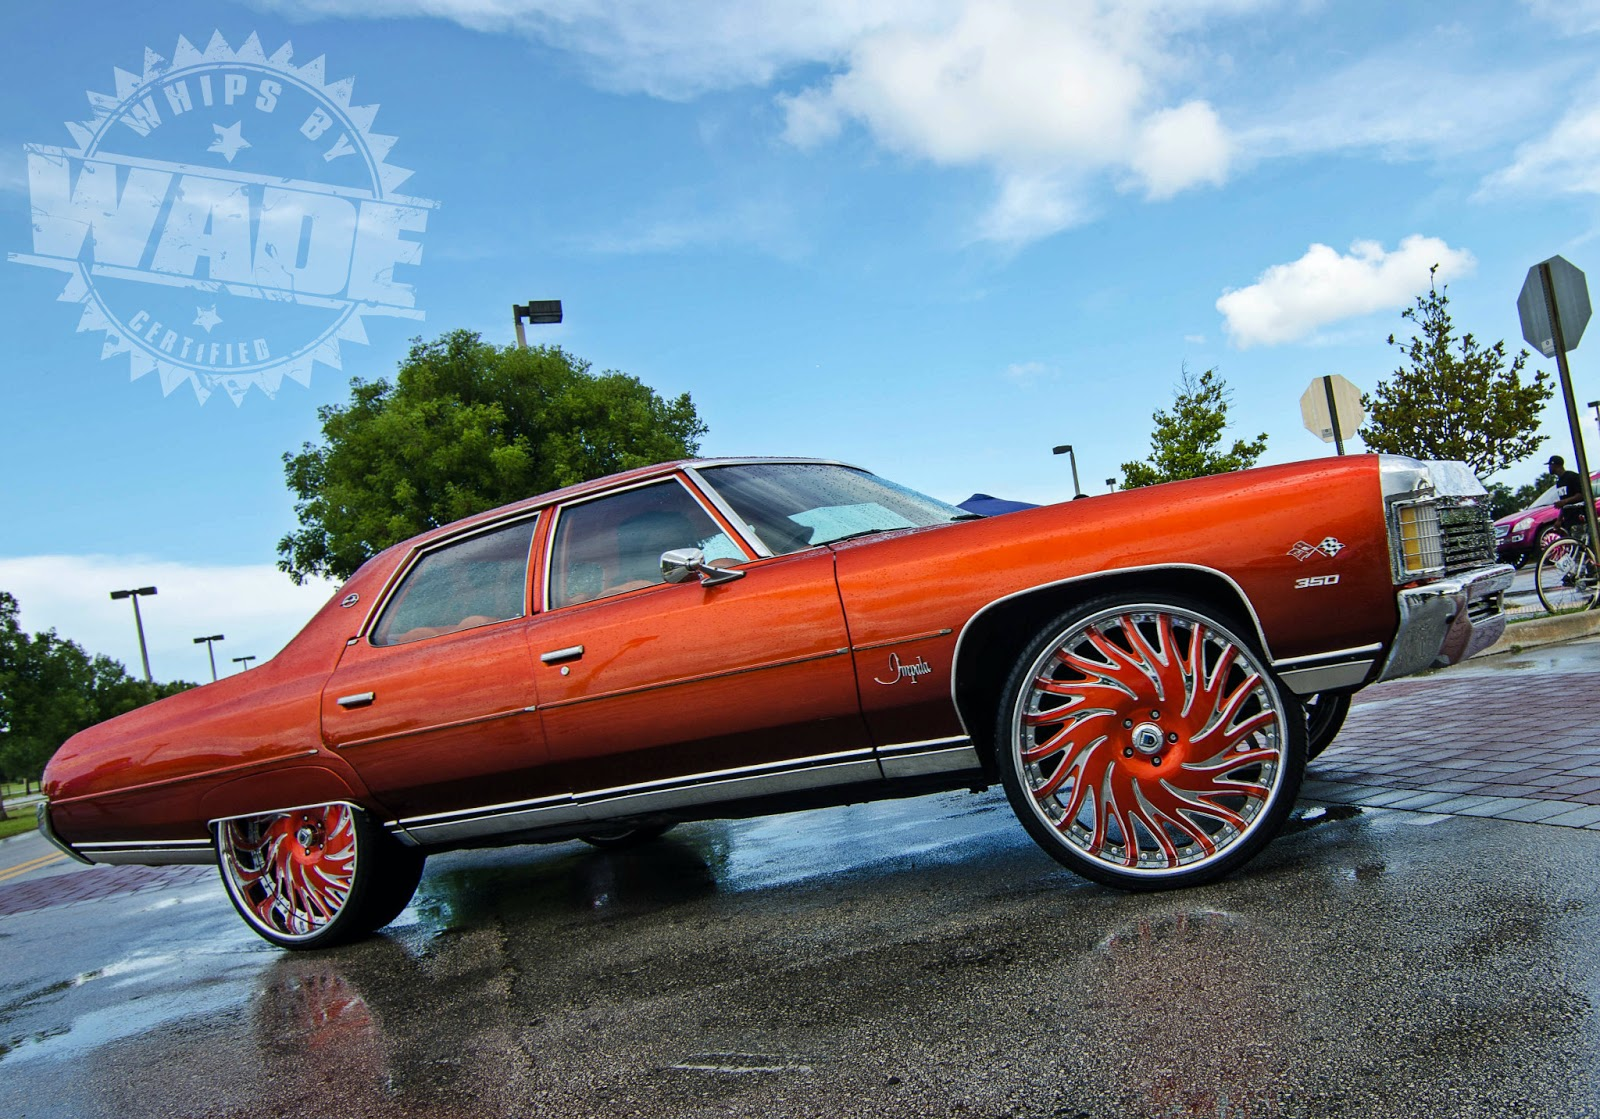 Whips By Wade: Candy Orange 1971 Chevrolet Impala on 26